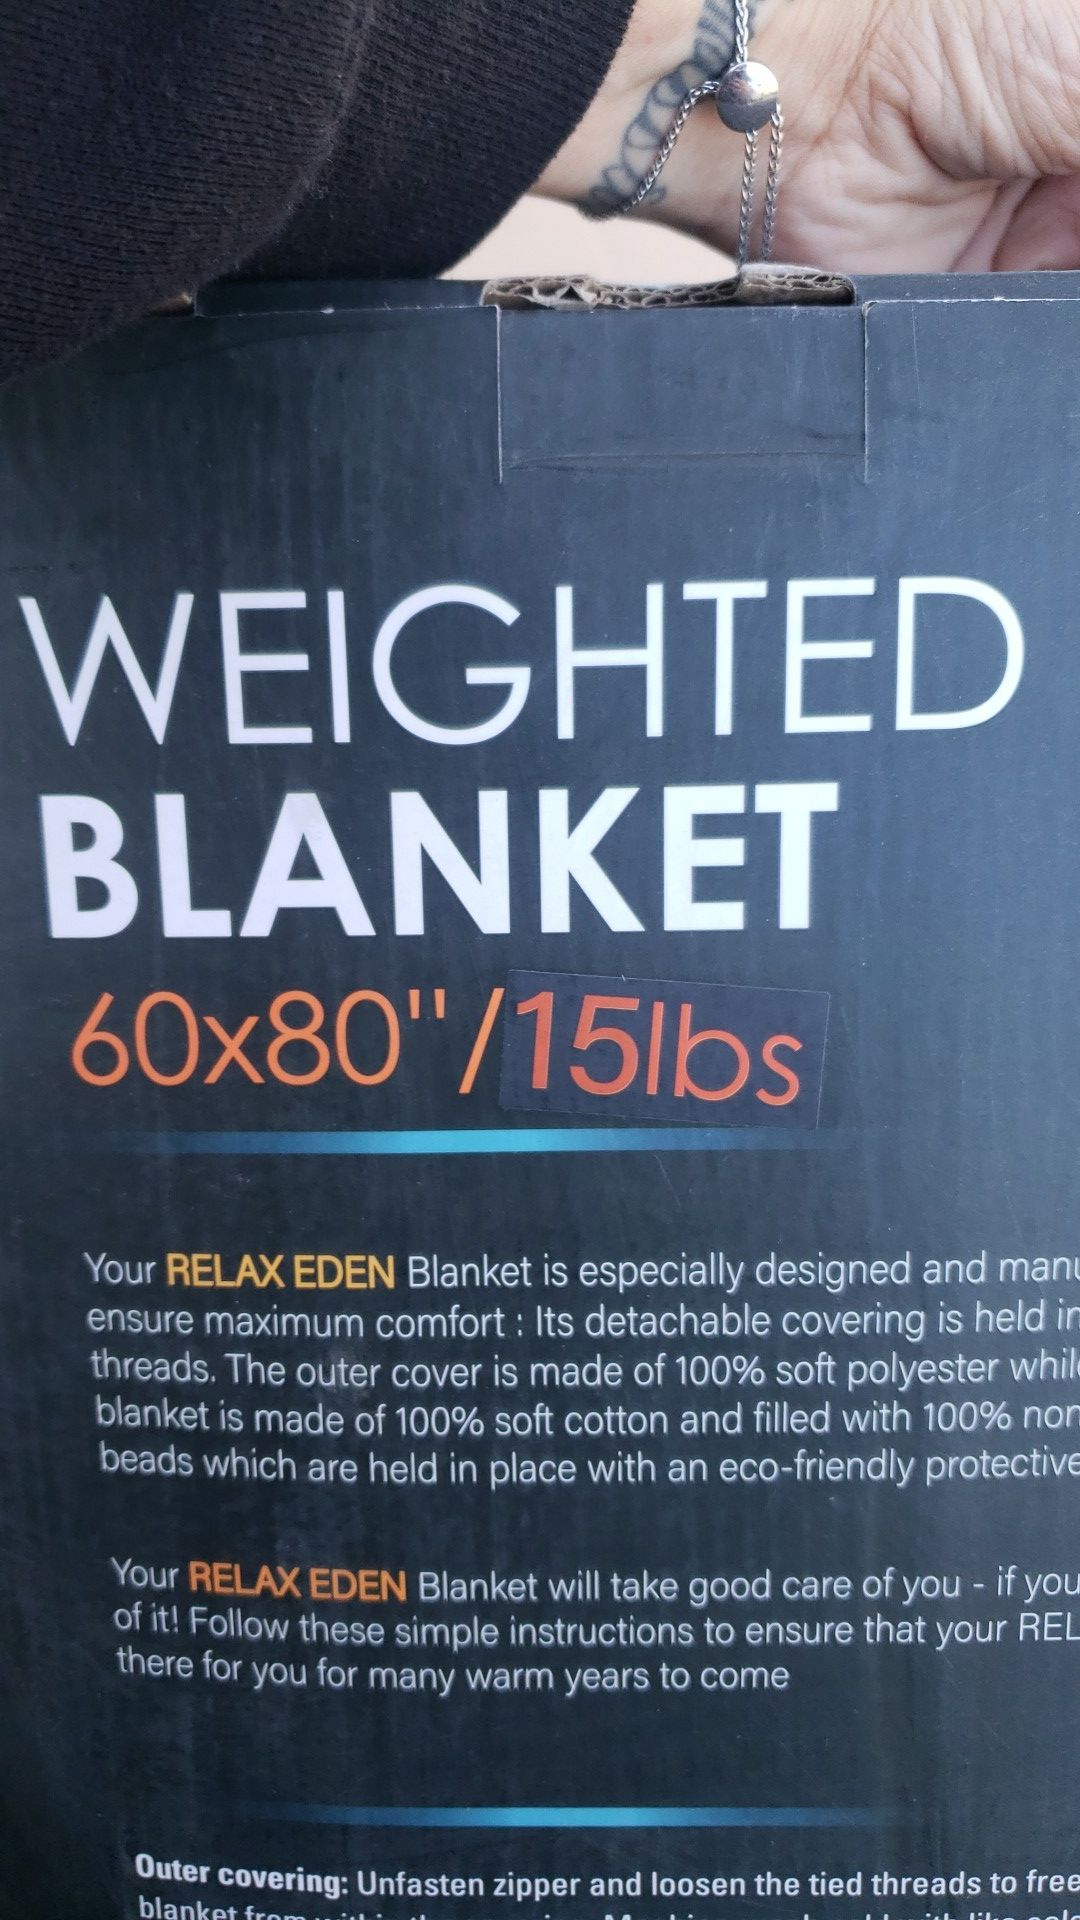 New weighted blanket